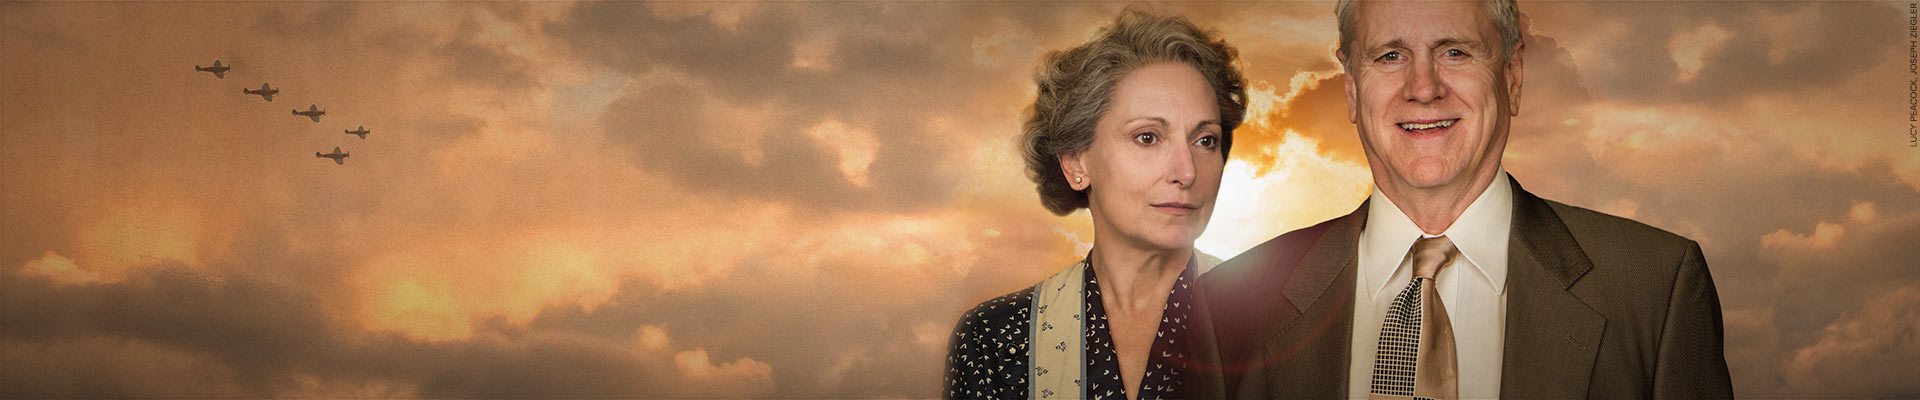 Promo image from All My Sons